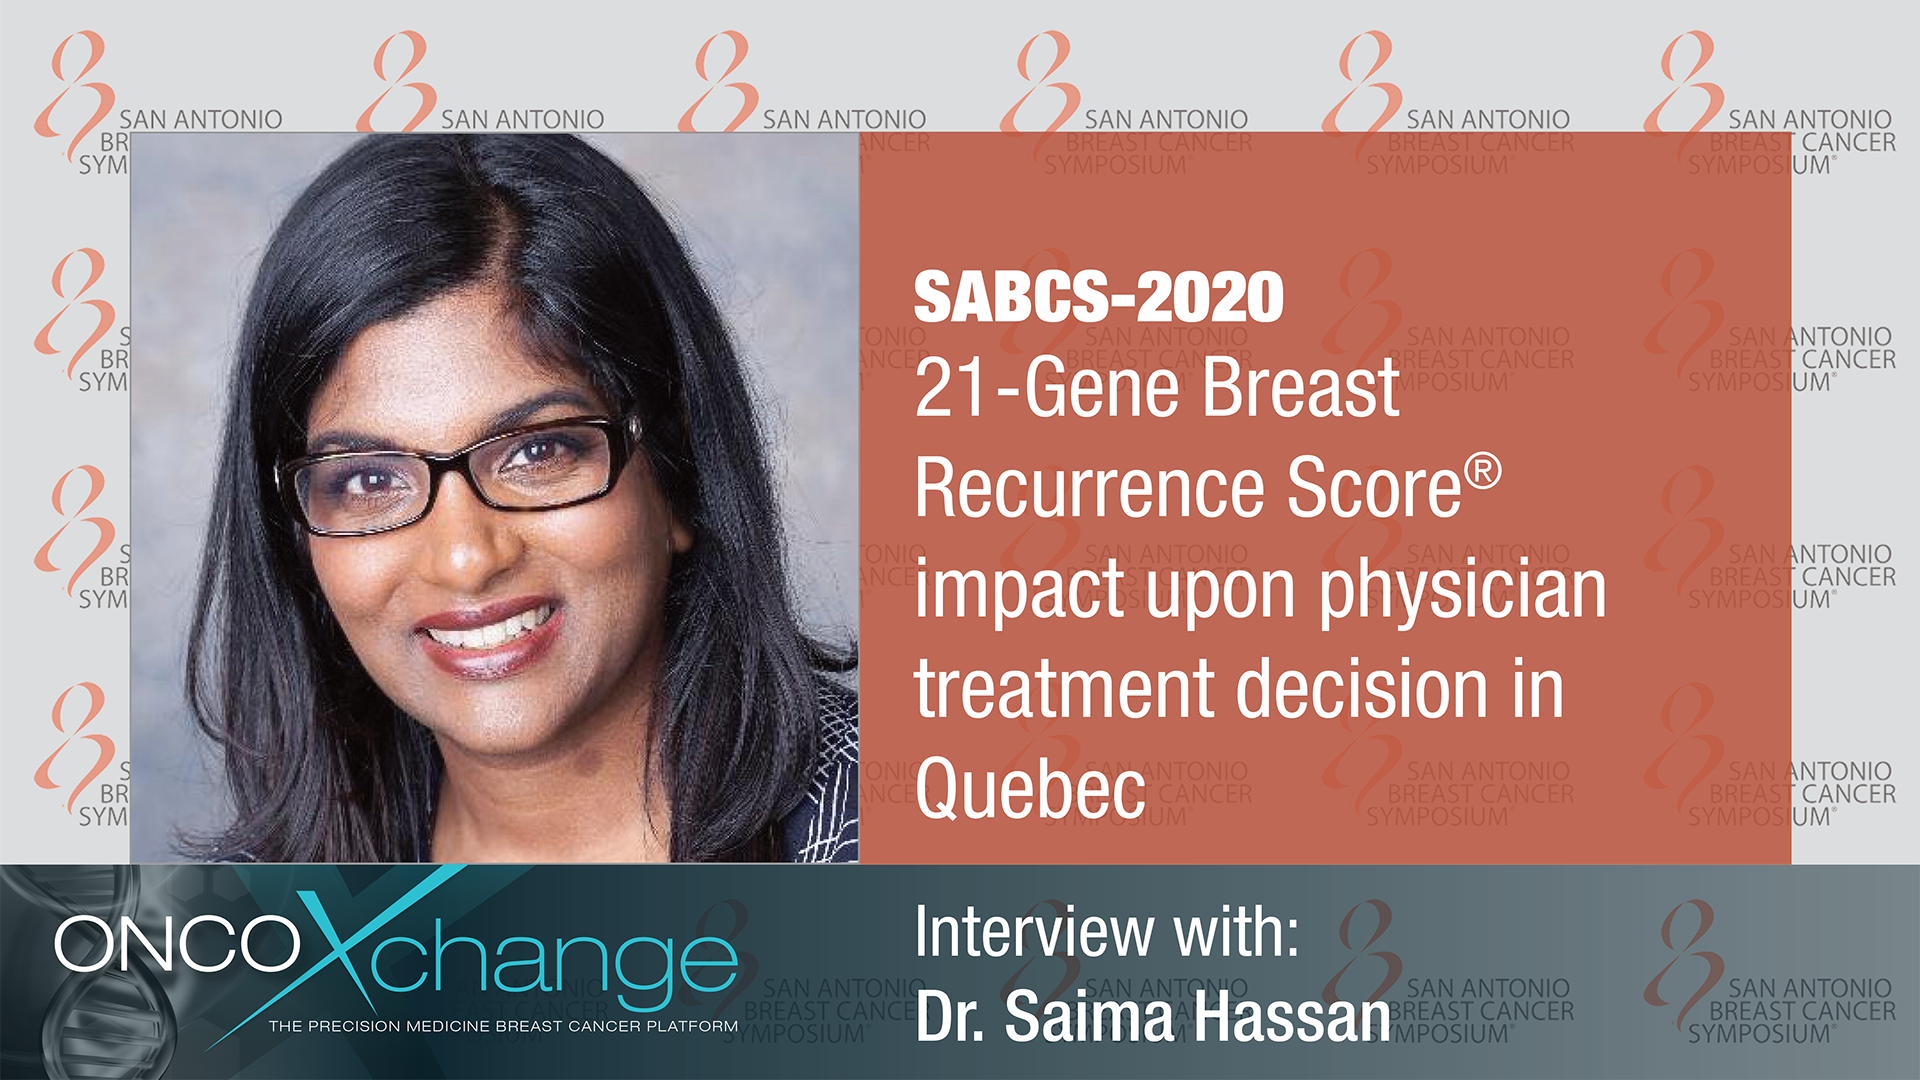 SABCS 2020 - 21-Gene Breast Recurrence Score® impact upon physician treatment decision in Quebec